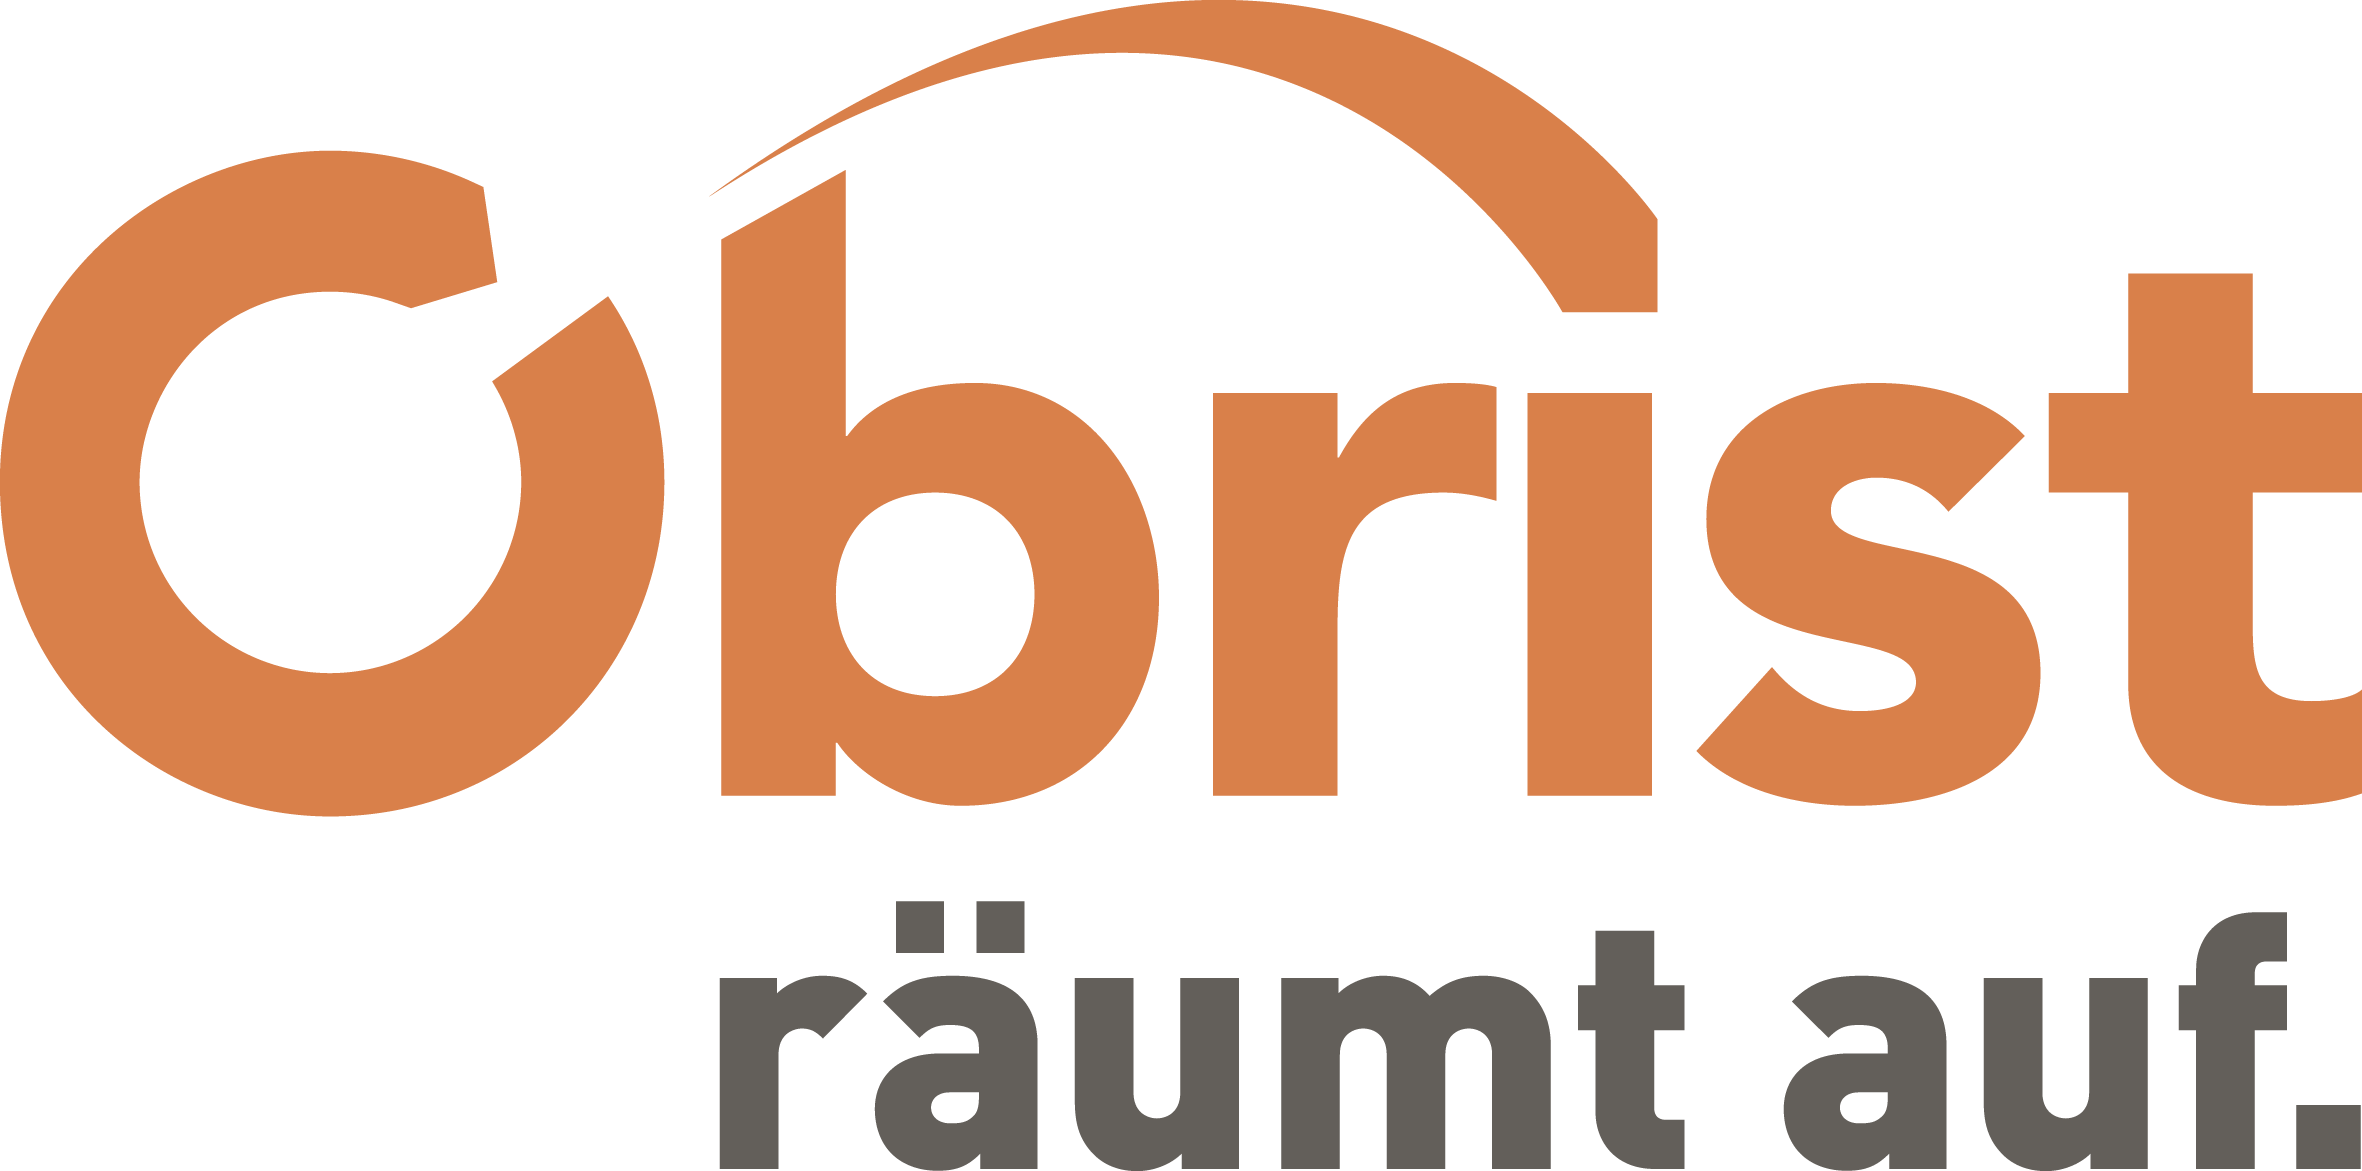 Obrist Transport + Recycling AG